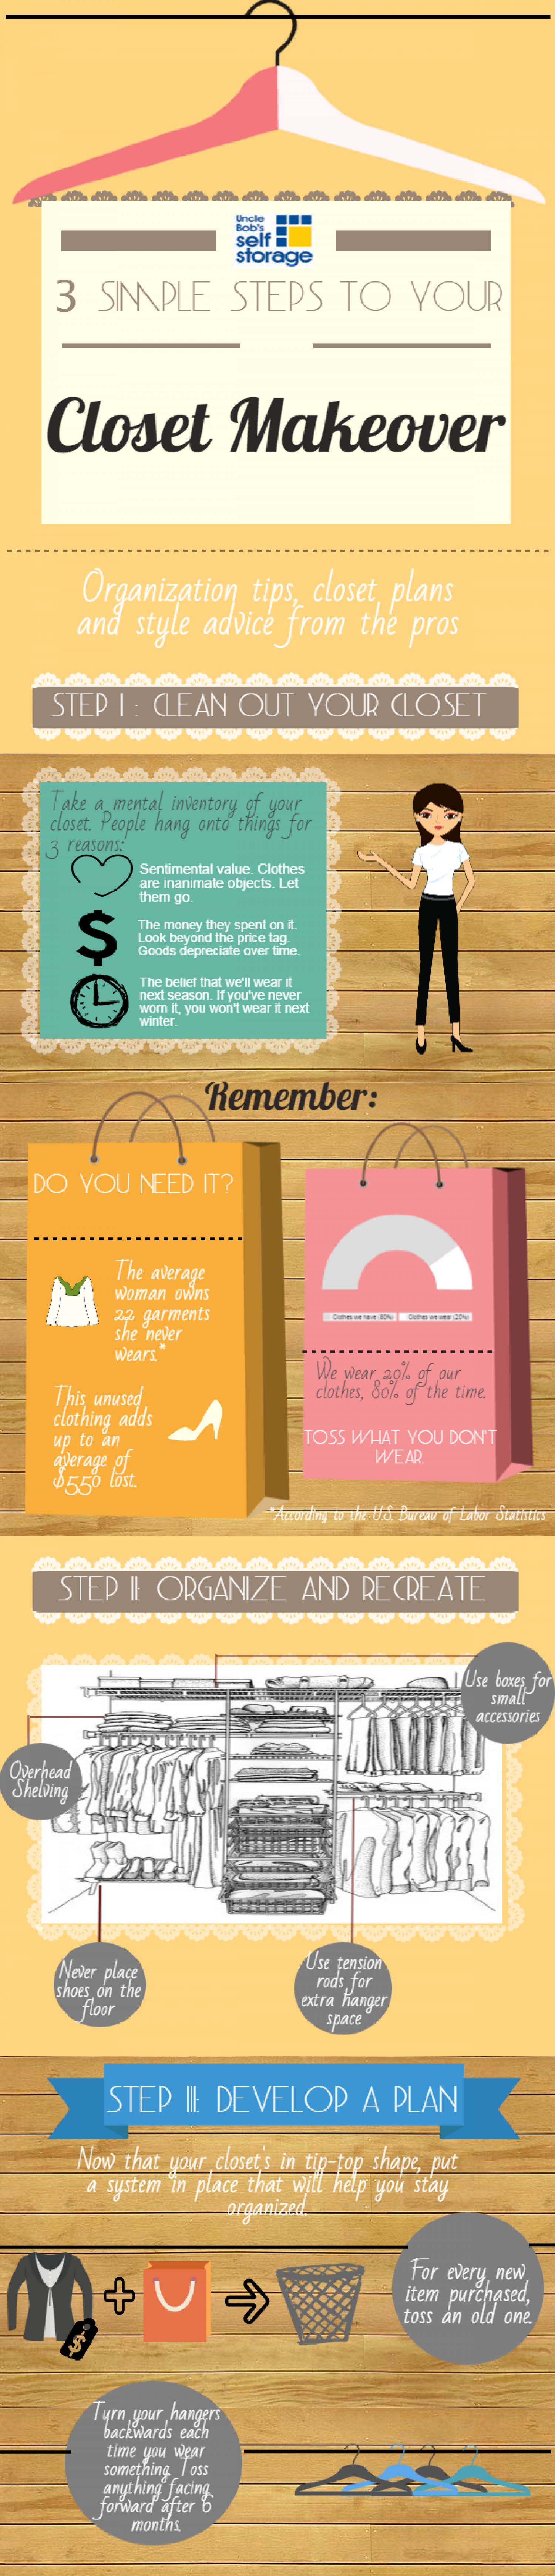 3 Simple Steps to your Complete Closet Makeover Infographic